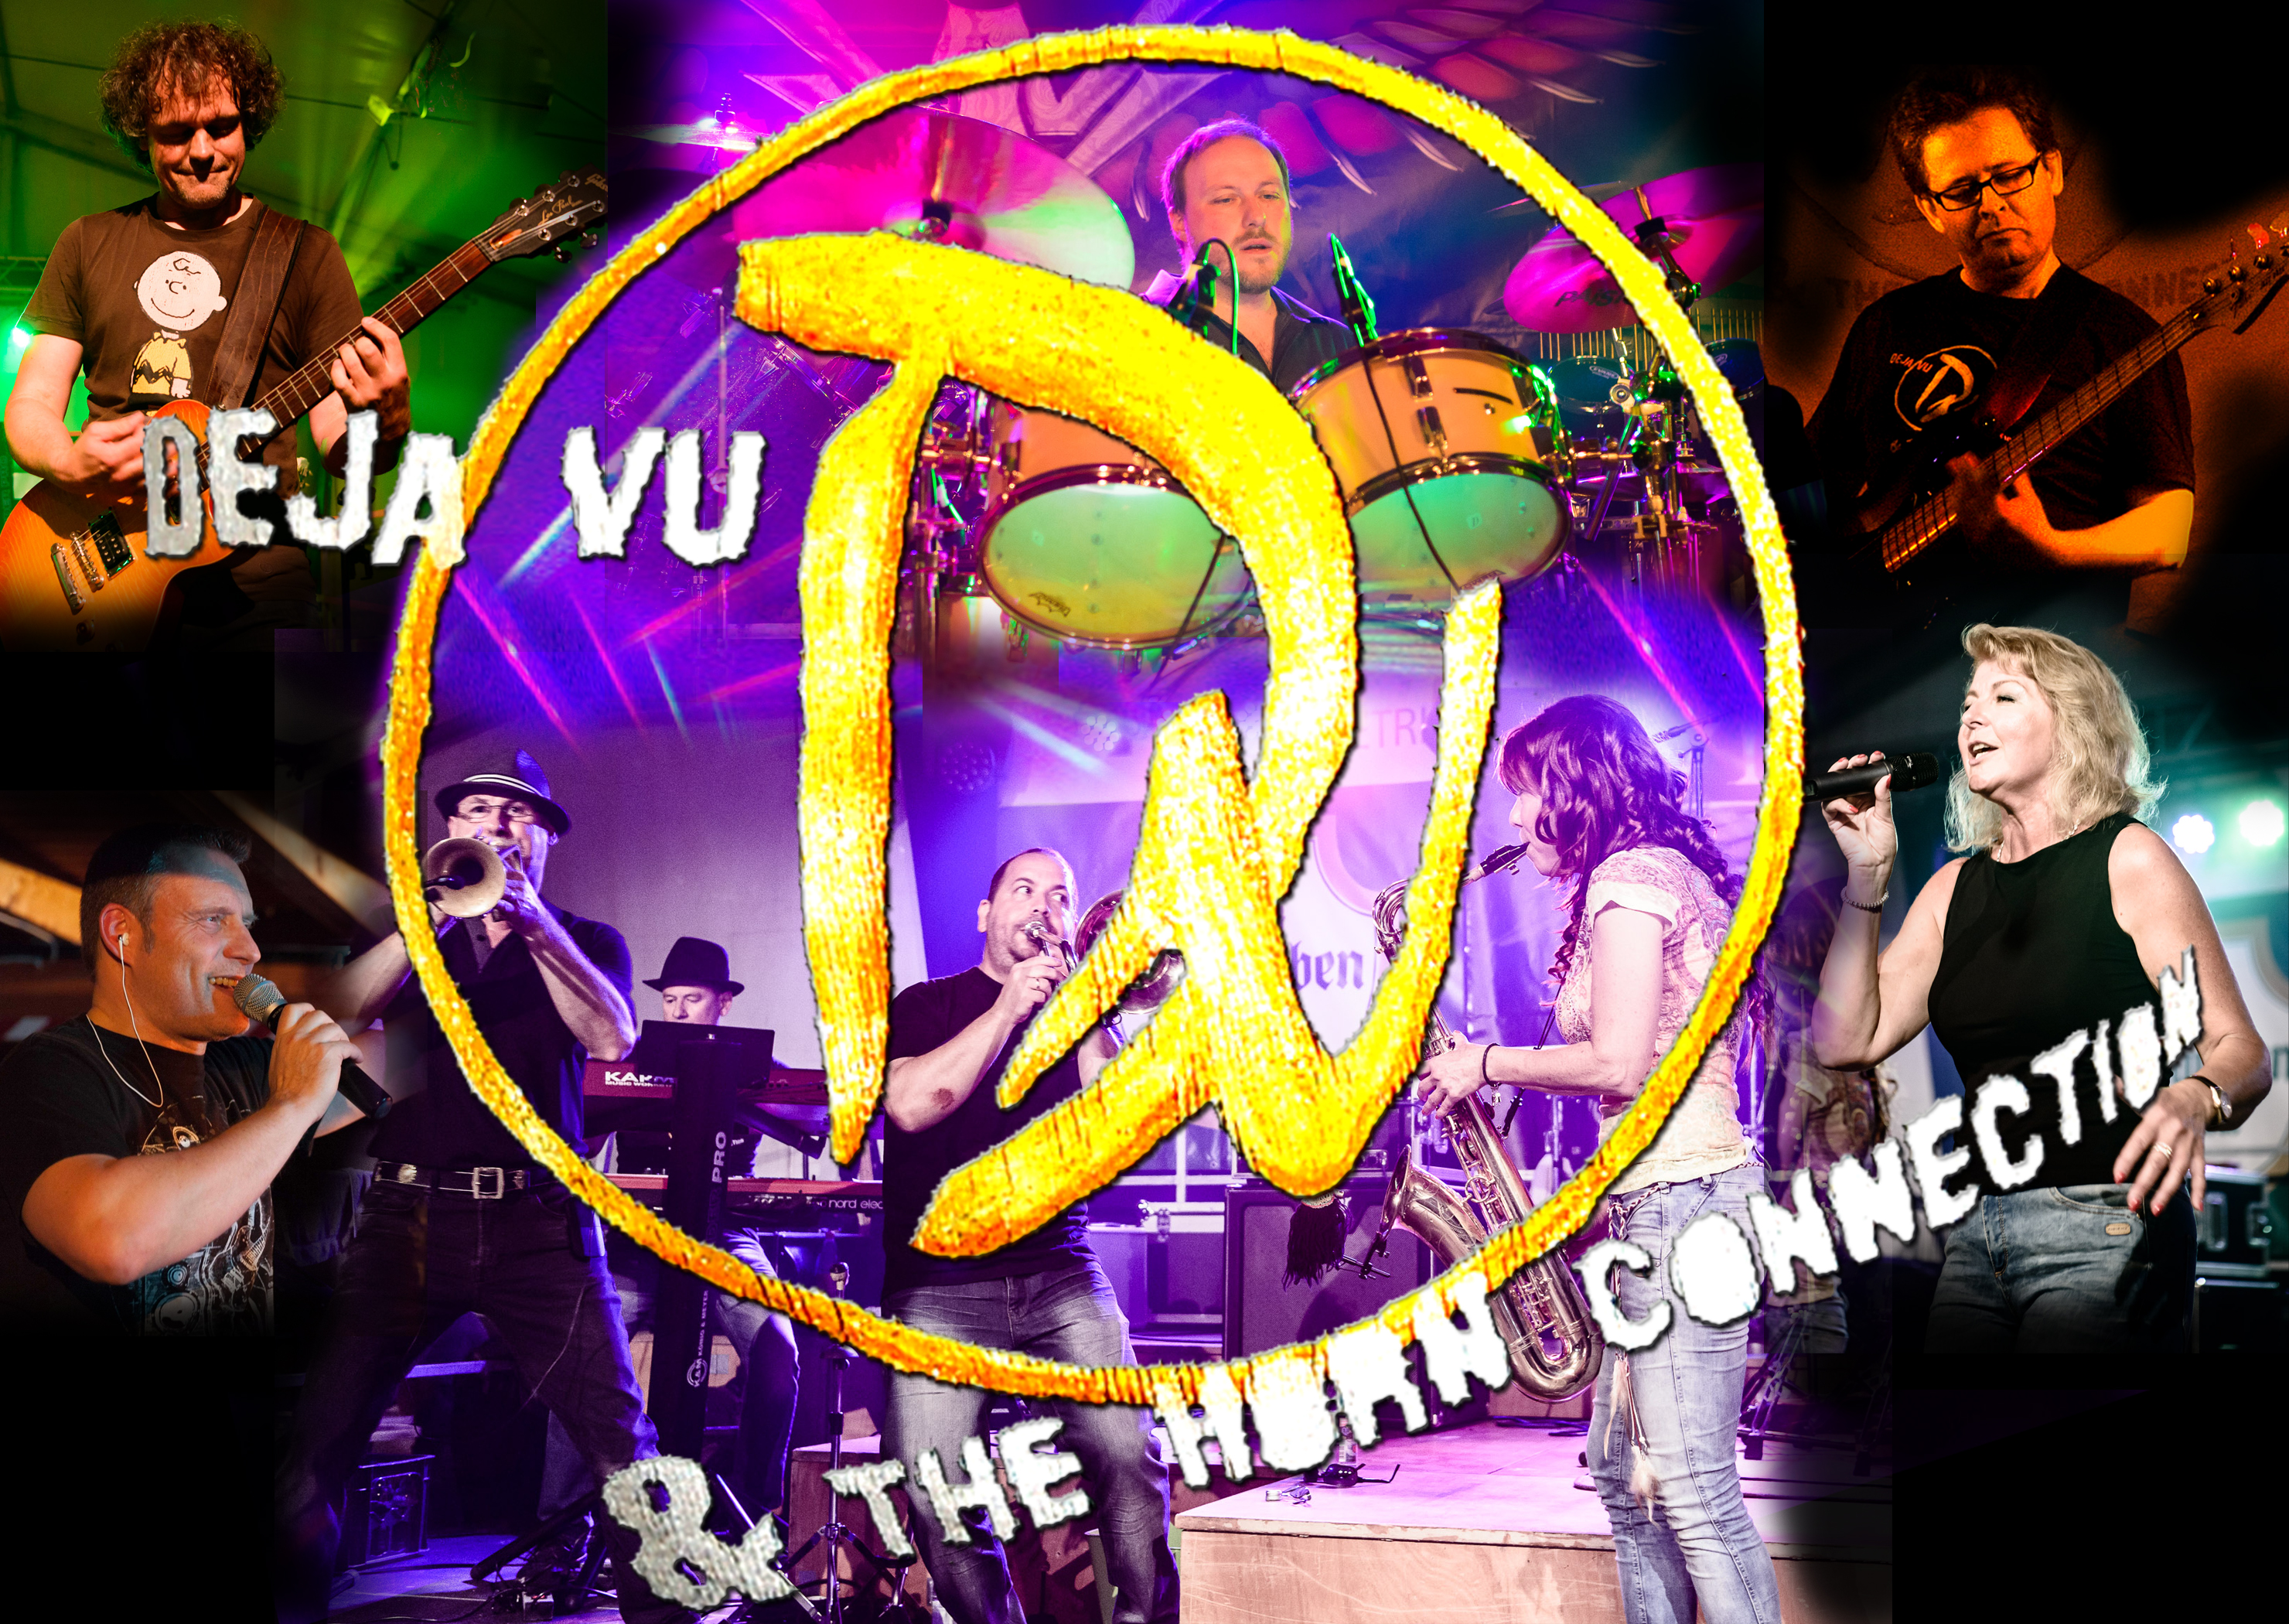 Deja vu & the horn connection